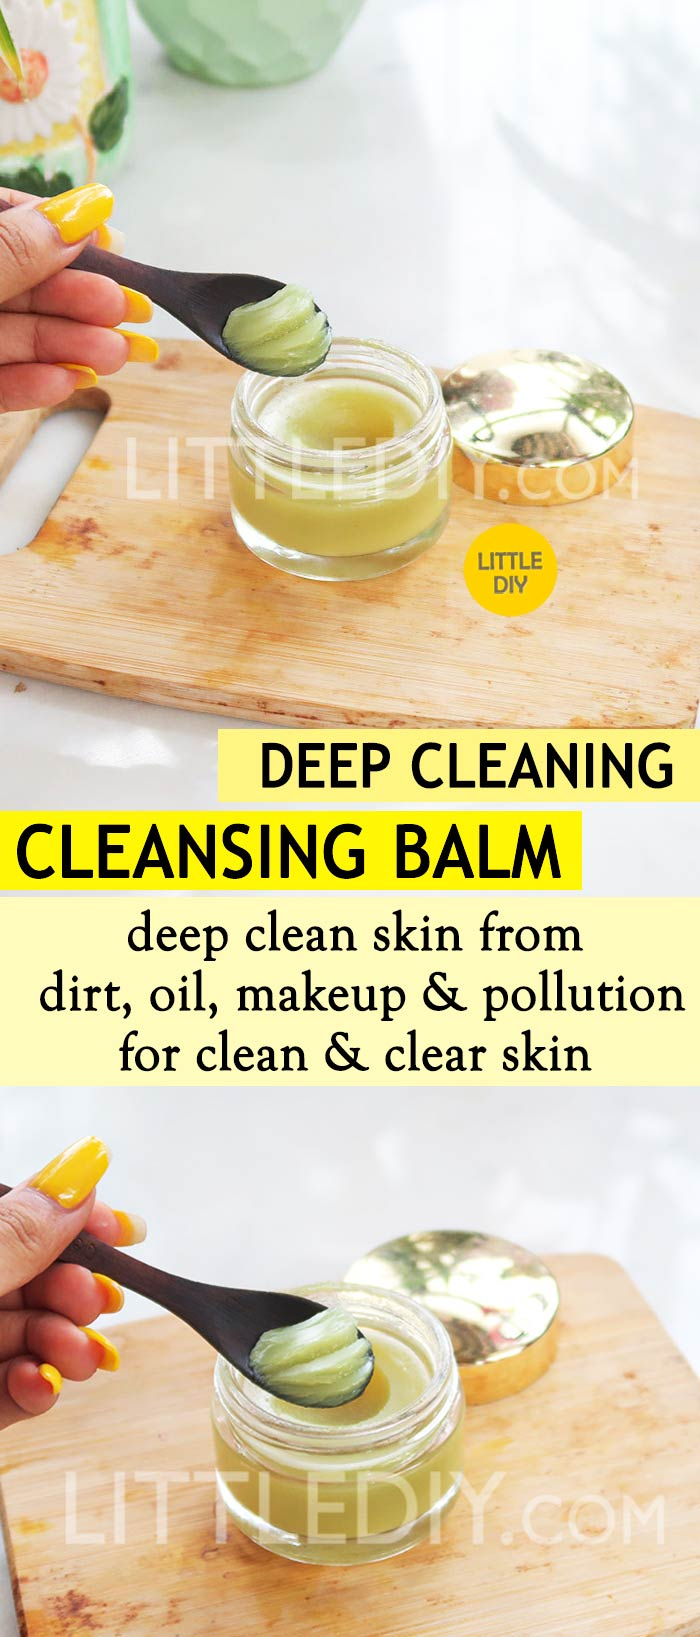 Photo of ALMOND OIL CLEANSING BALM to deep clean skin